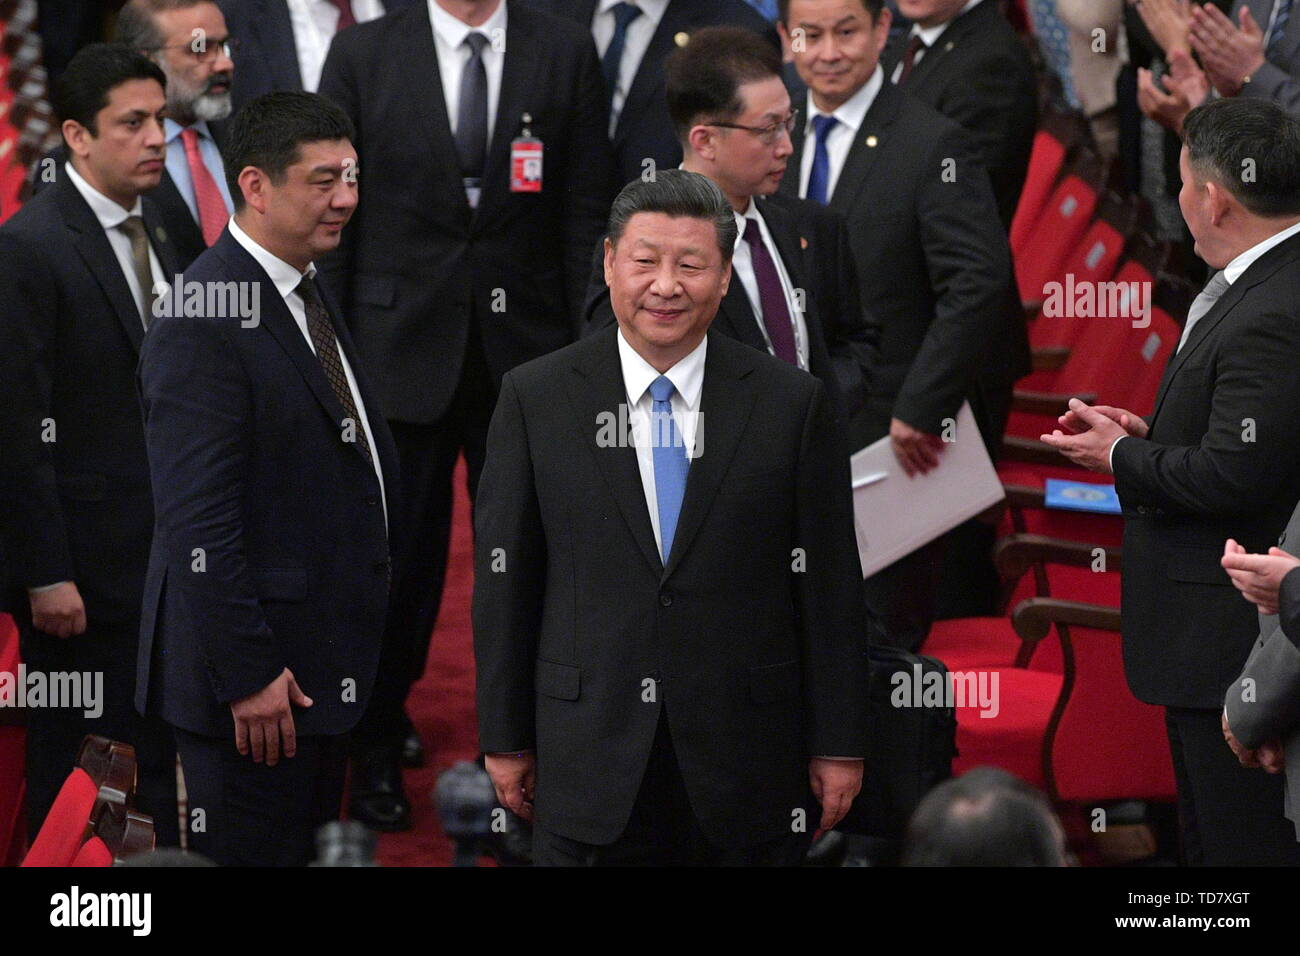 Bishkek, Kyrgyzstan. 13th June, 2019. BISHKEK, KYRGYZSTAN - JUNE 13, 2019: China's President Xi Jinping (C) ahead of a gala concert marking a meeting of the SCO (Shanghai Cooperation Organisation) Council of Heads of State. Alexei Druzhinin/Russian Presidential Press and Information Office/TASS Credit: ITAR-TASS News Agency/Alamy Live News - Stock Image